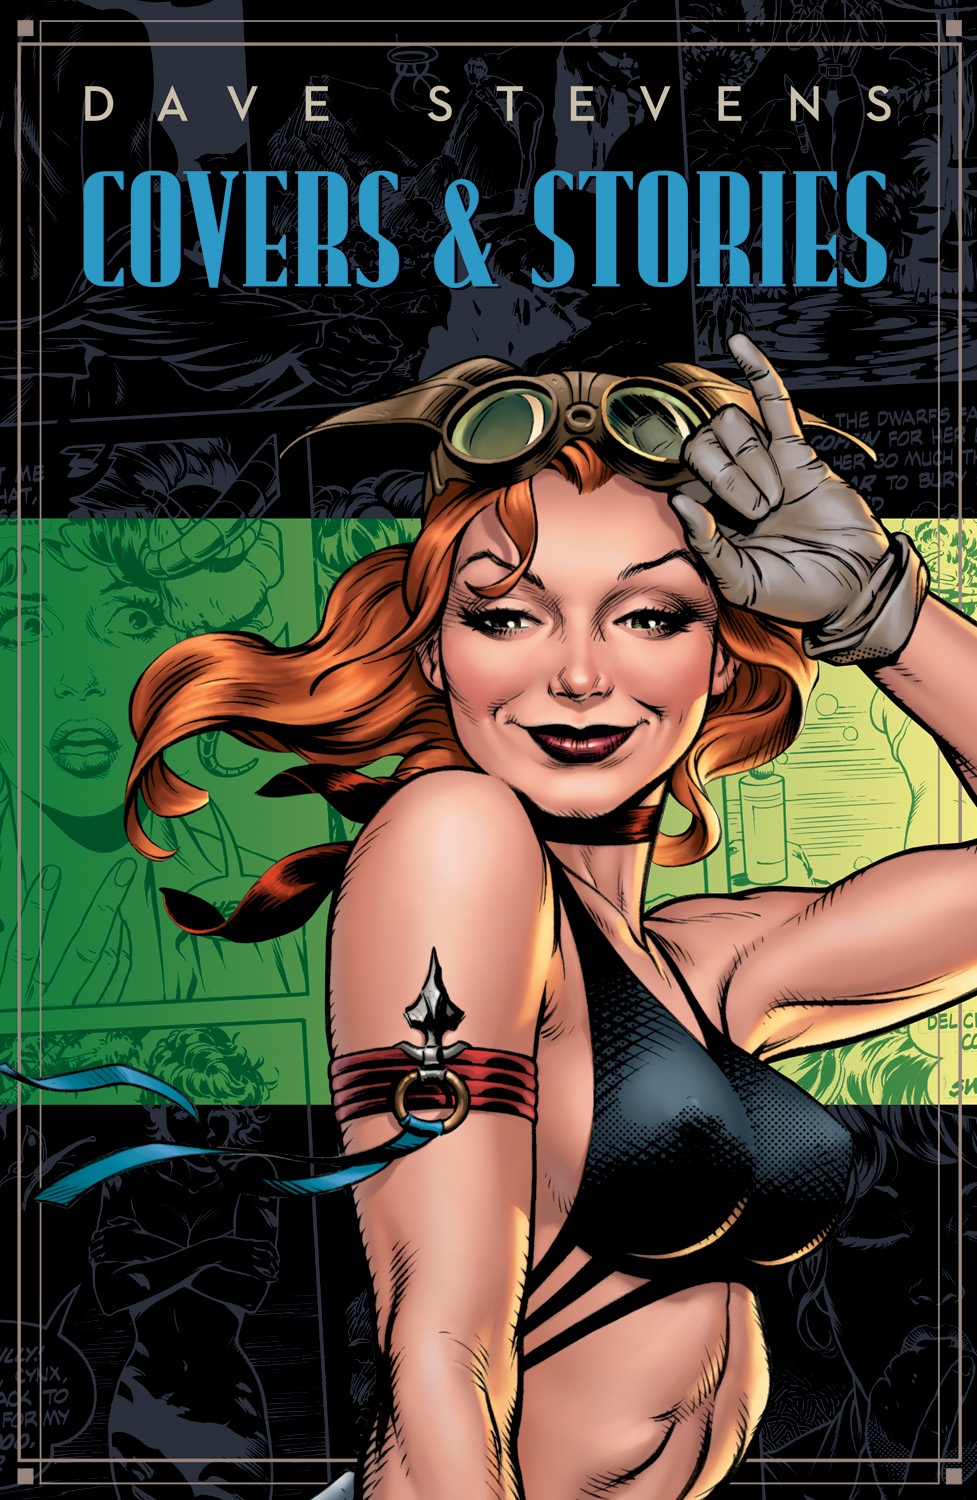 DaveStevensCoversandStories DAVE STEVENS' COVERS AND STORIES features non-Rocketeer stories